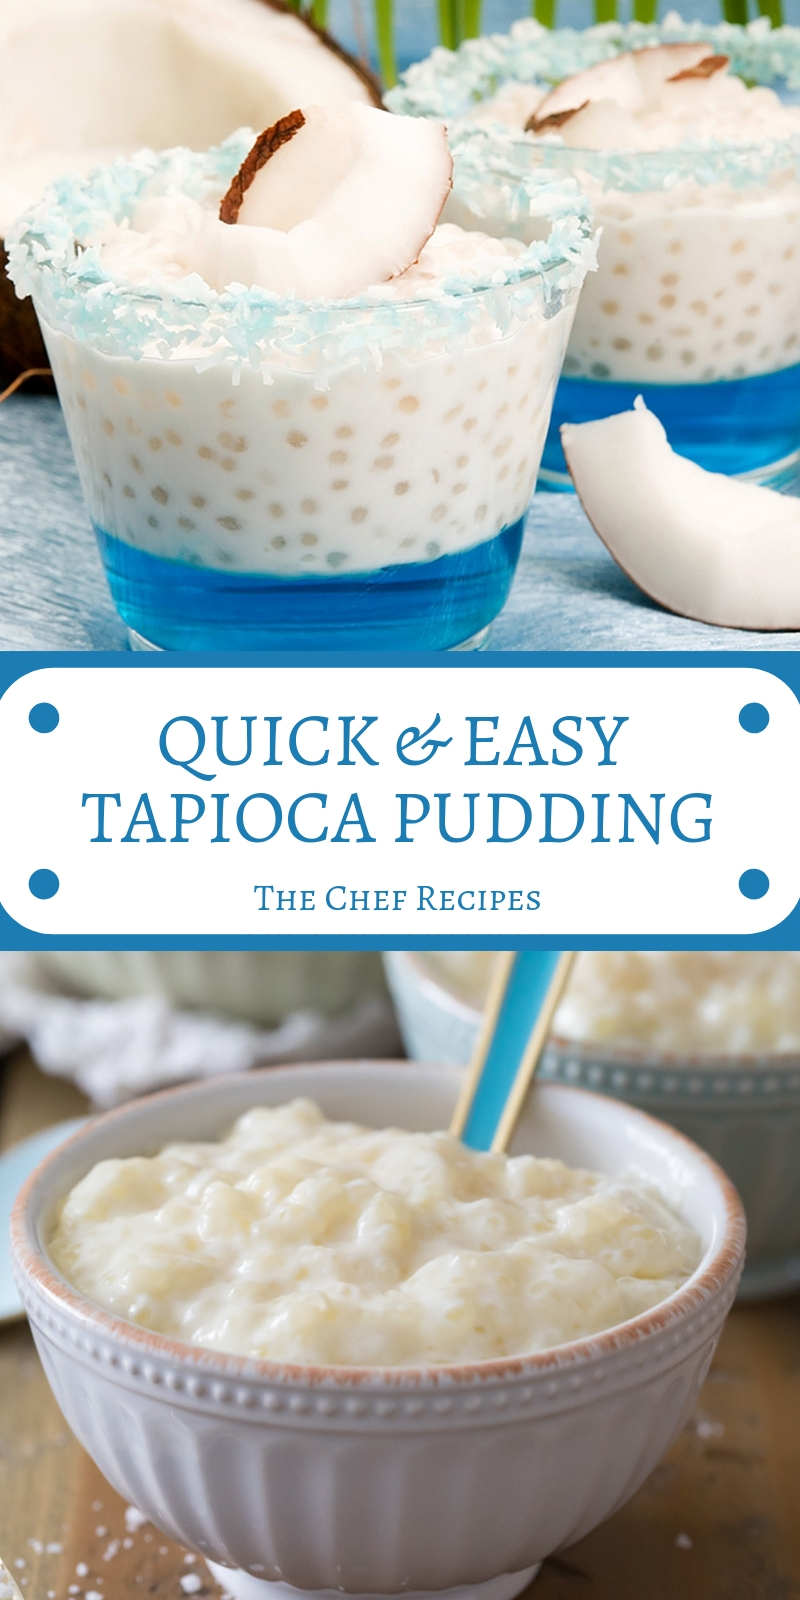 QUICK & EASY TAPIOCA PUDDING